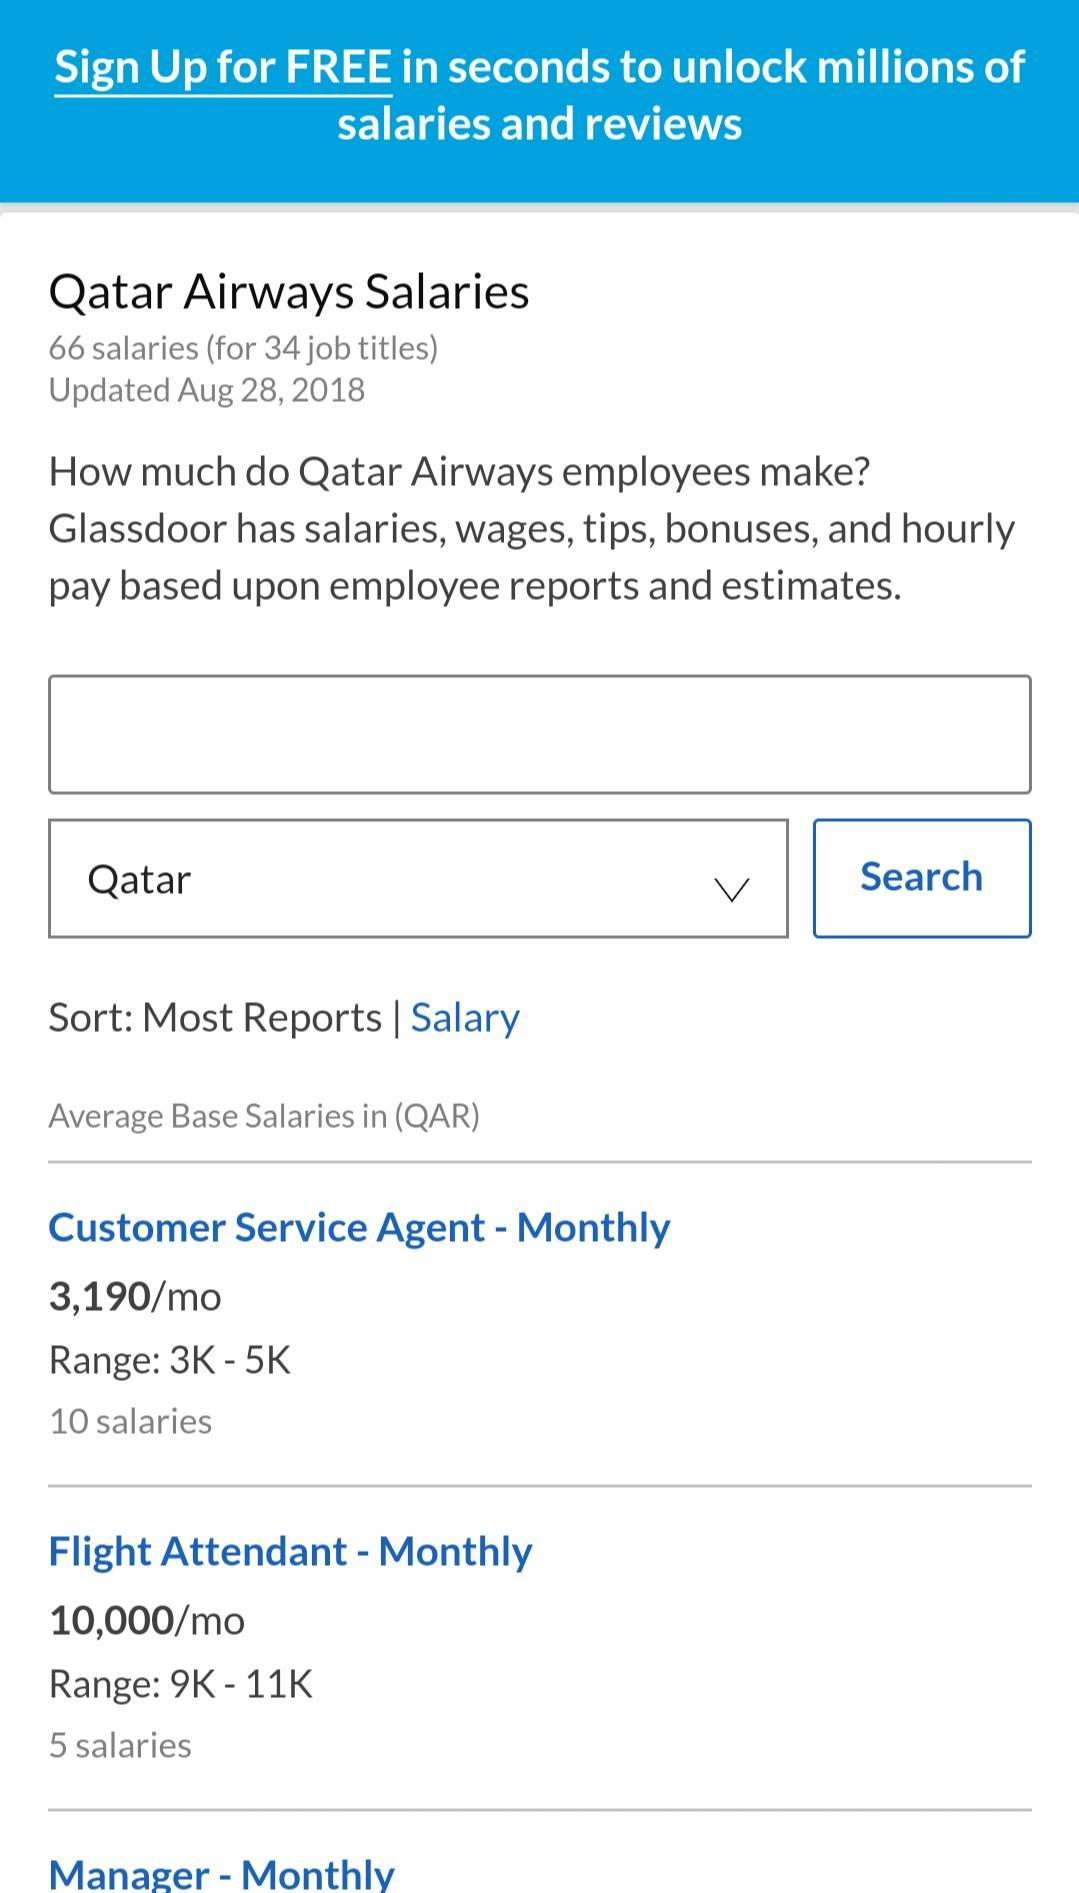 Qatar Airways Cabin Crew Interview Questions? for Android - APK Download